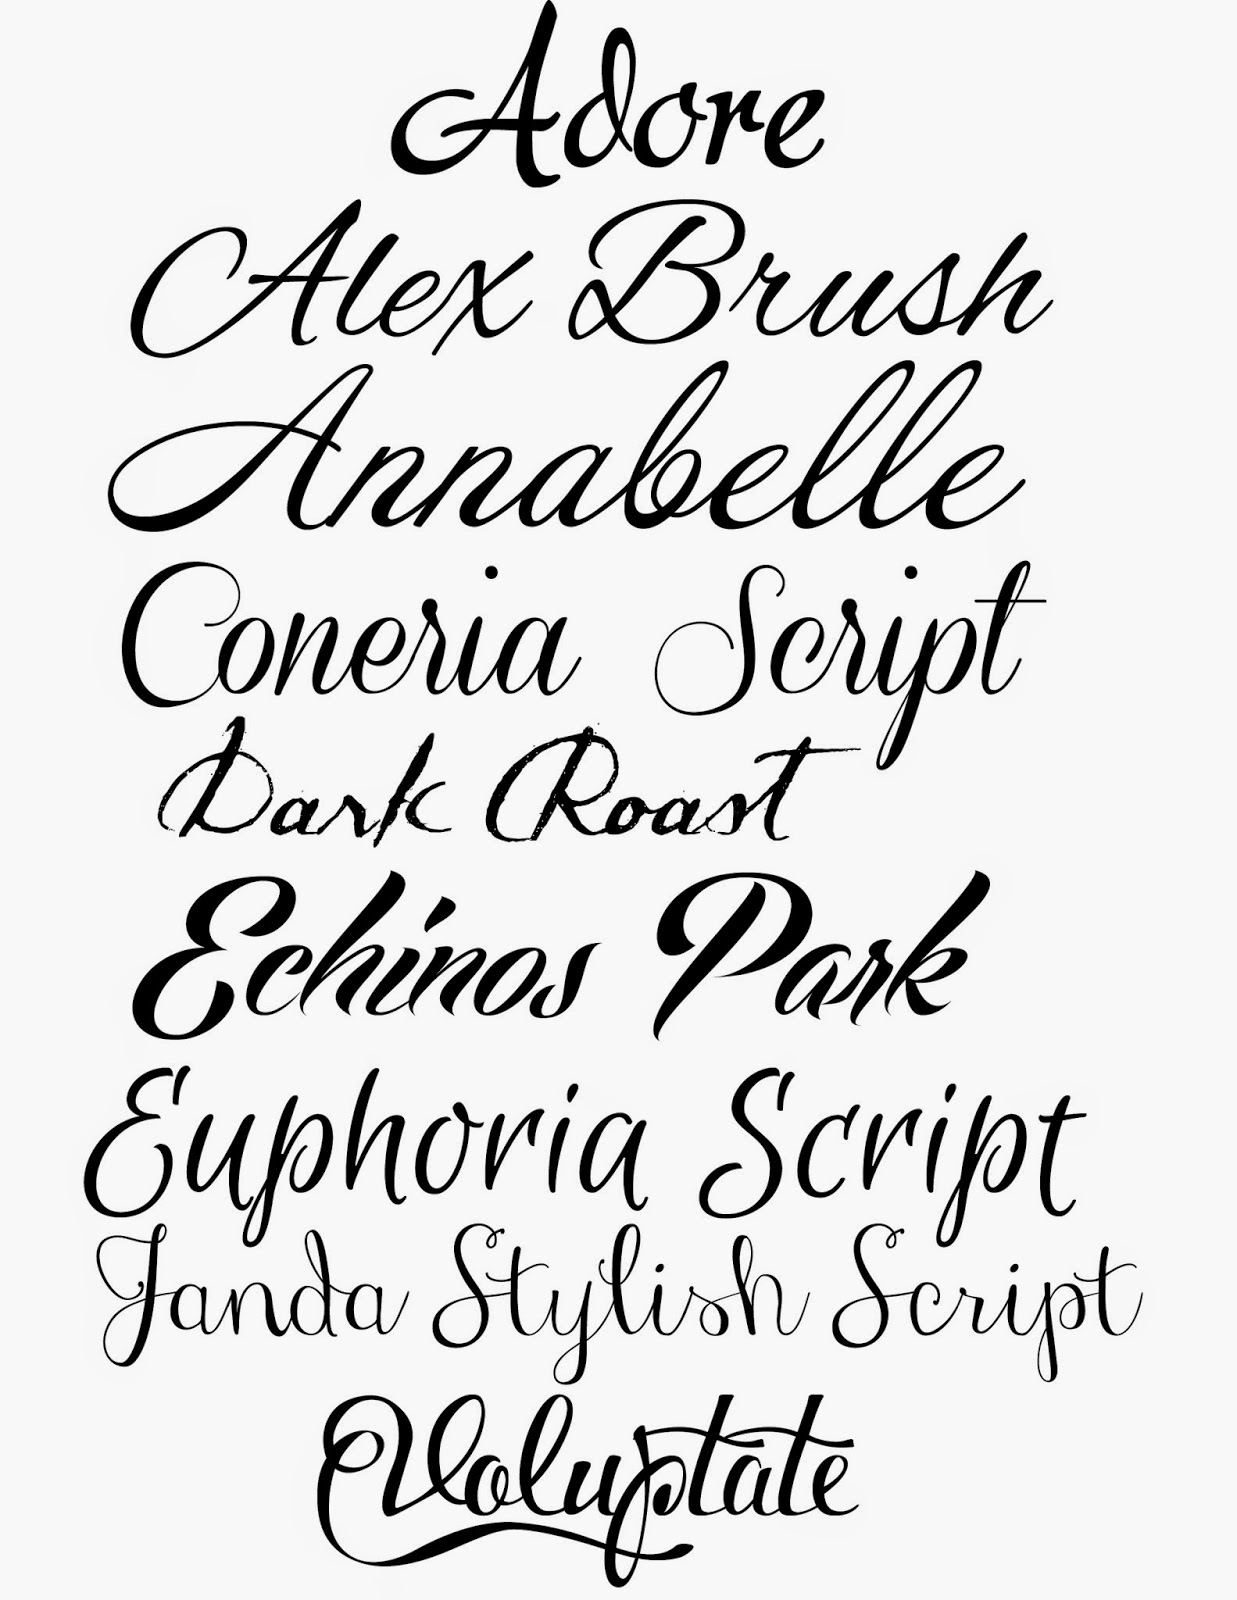 Old Calligraphy Font Free Doodlecraft How To Fake Script Calligraphy